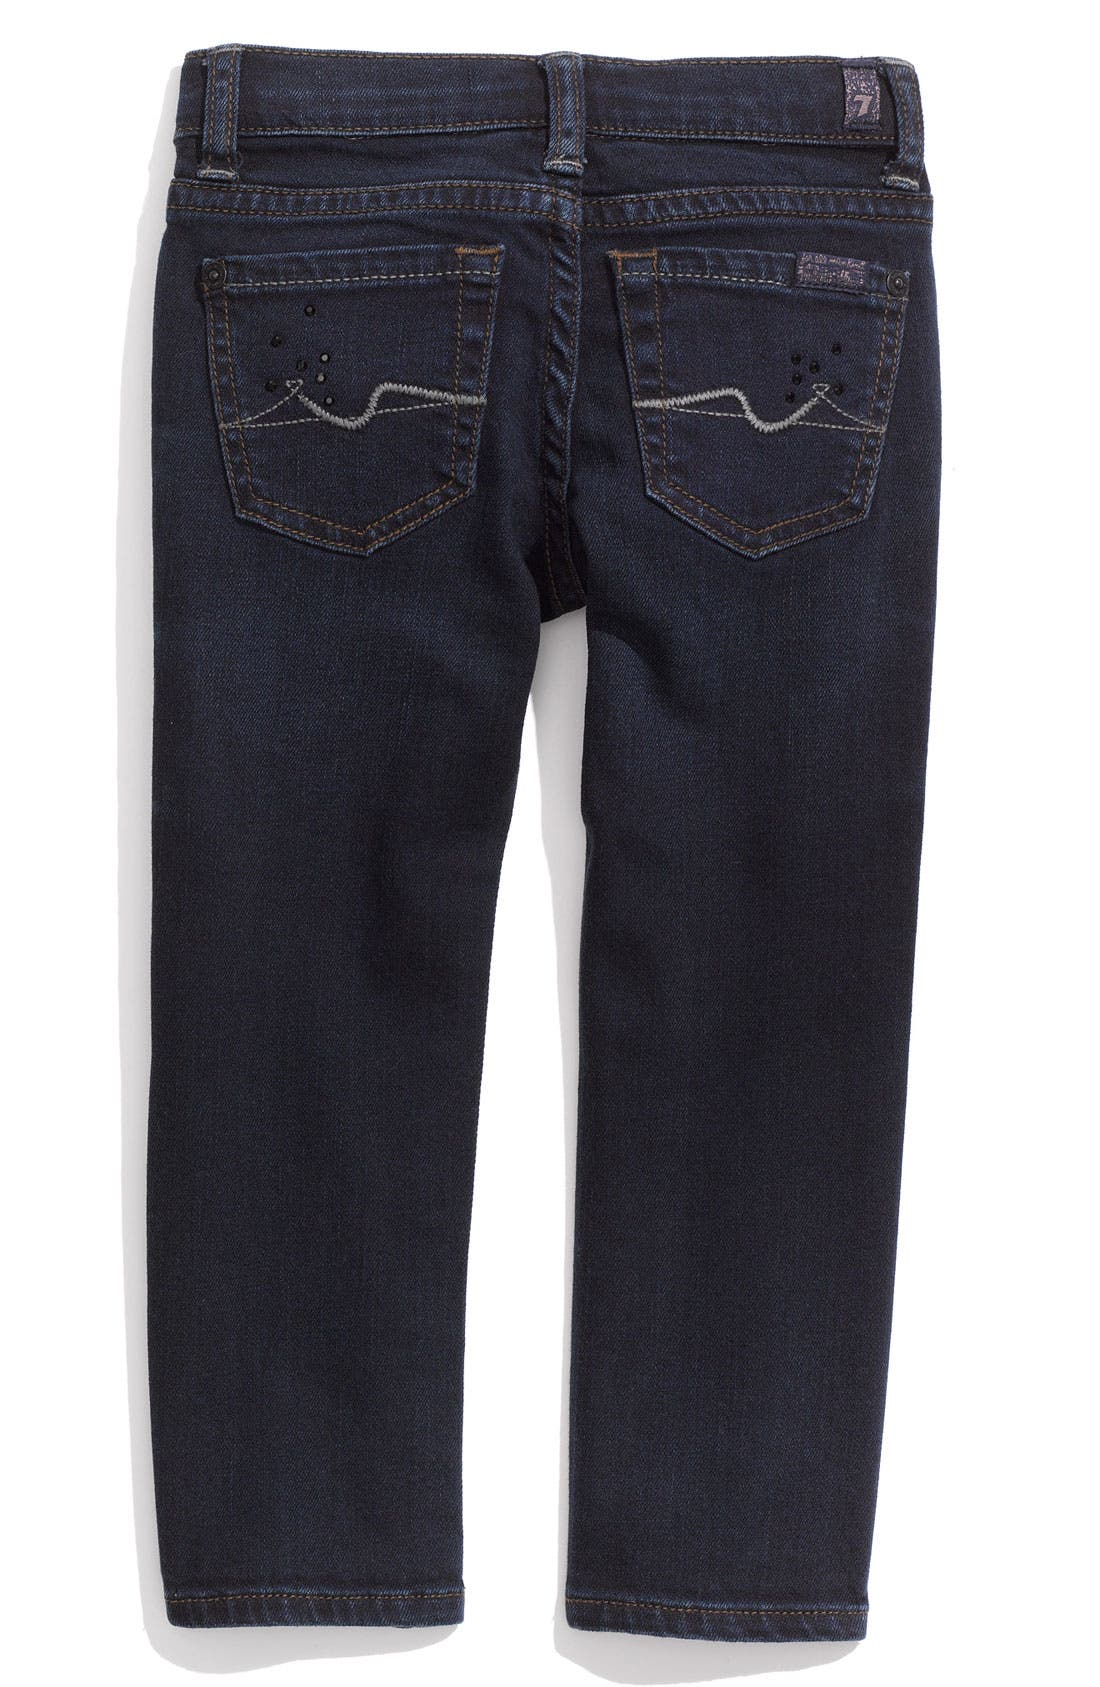 Main Image - 7 For All Mankind® 'Roxanne' Jeans (Toddler)